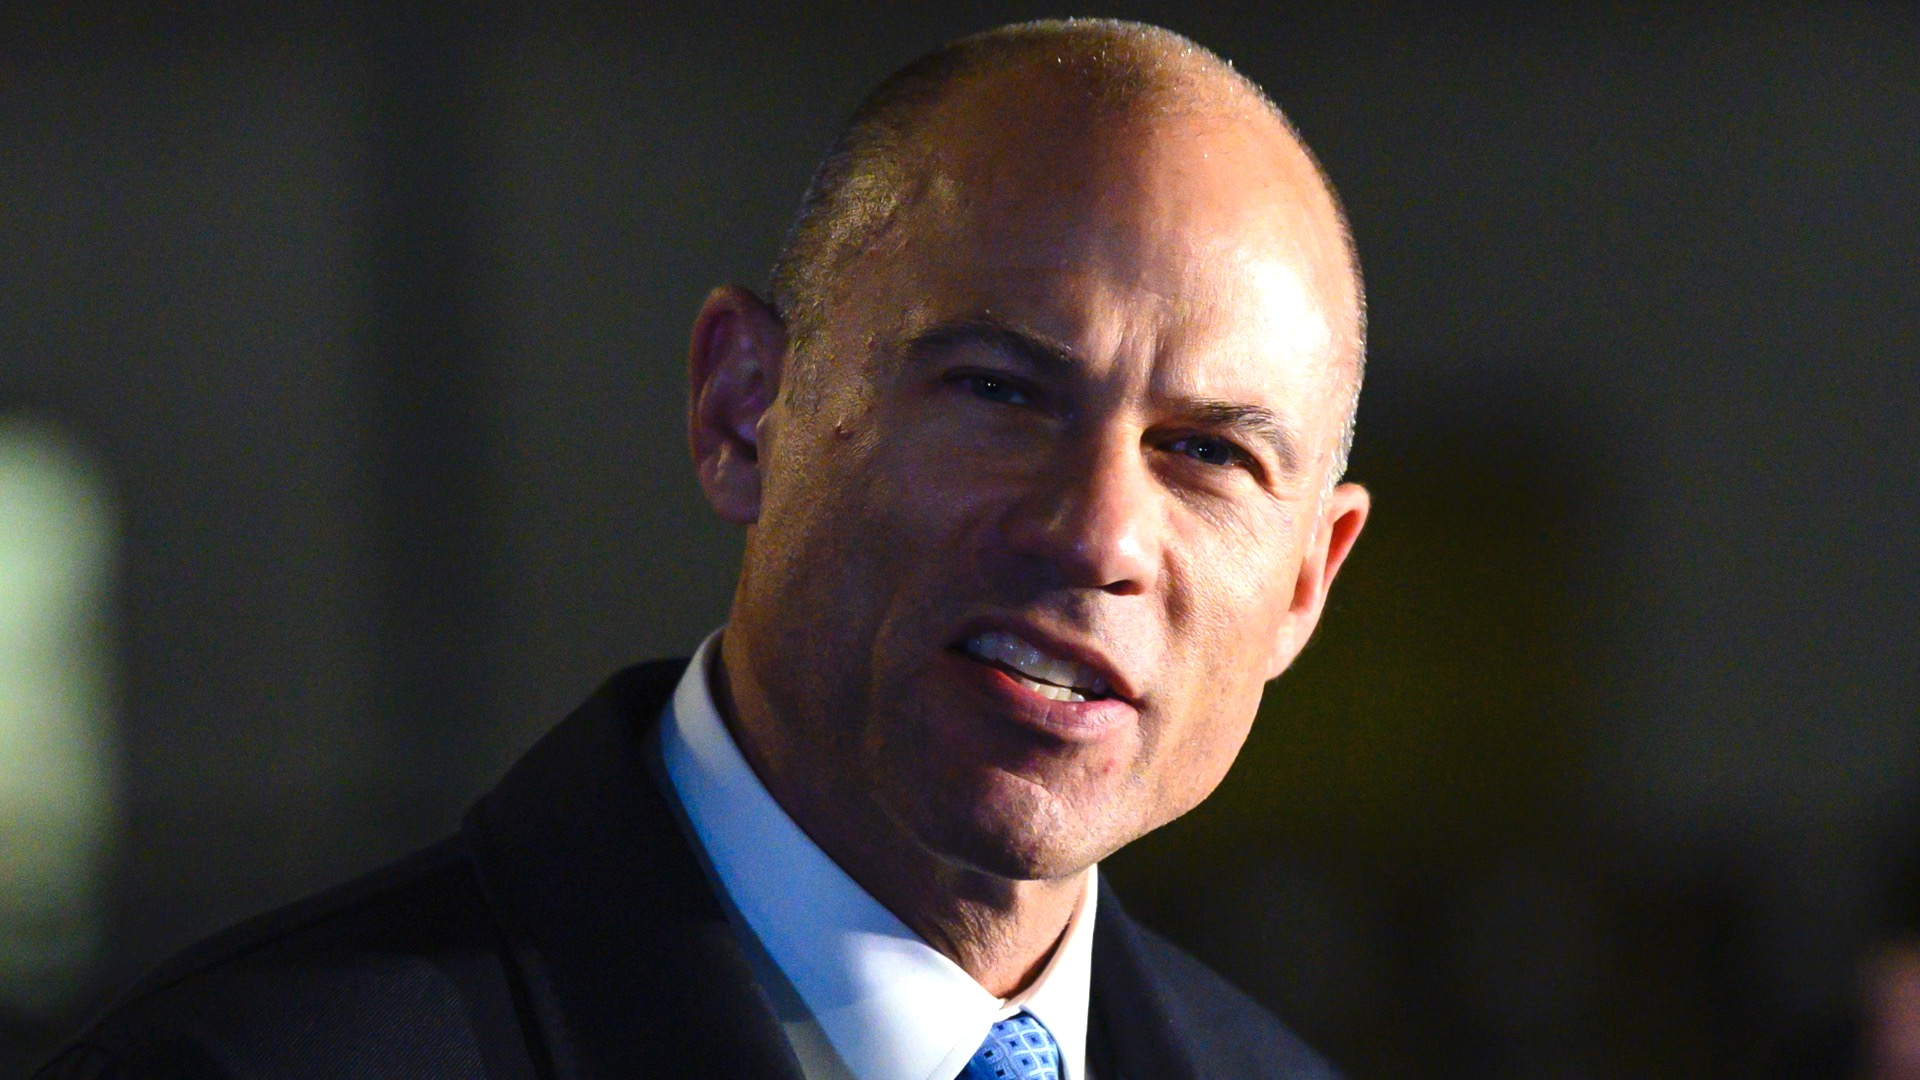 Lawmakers Seek Update From DOJ on Avenatti, Swetnick Criminal Referrals: 'What Have You Done?'